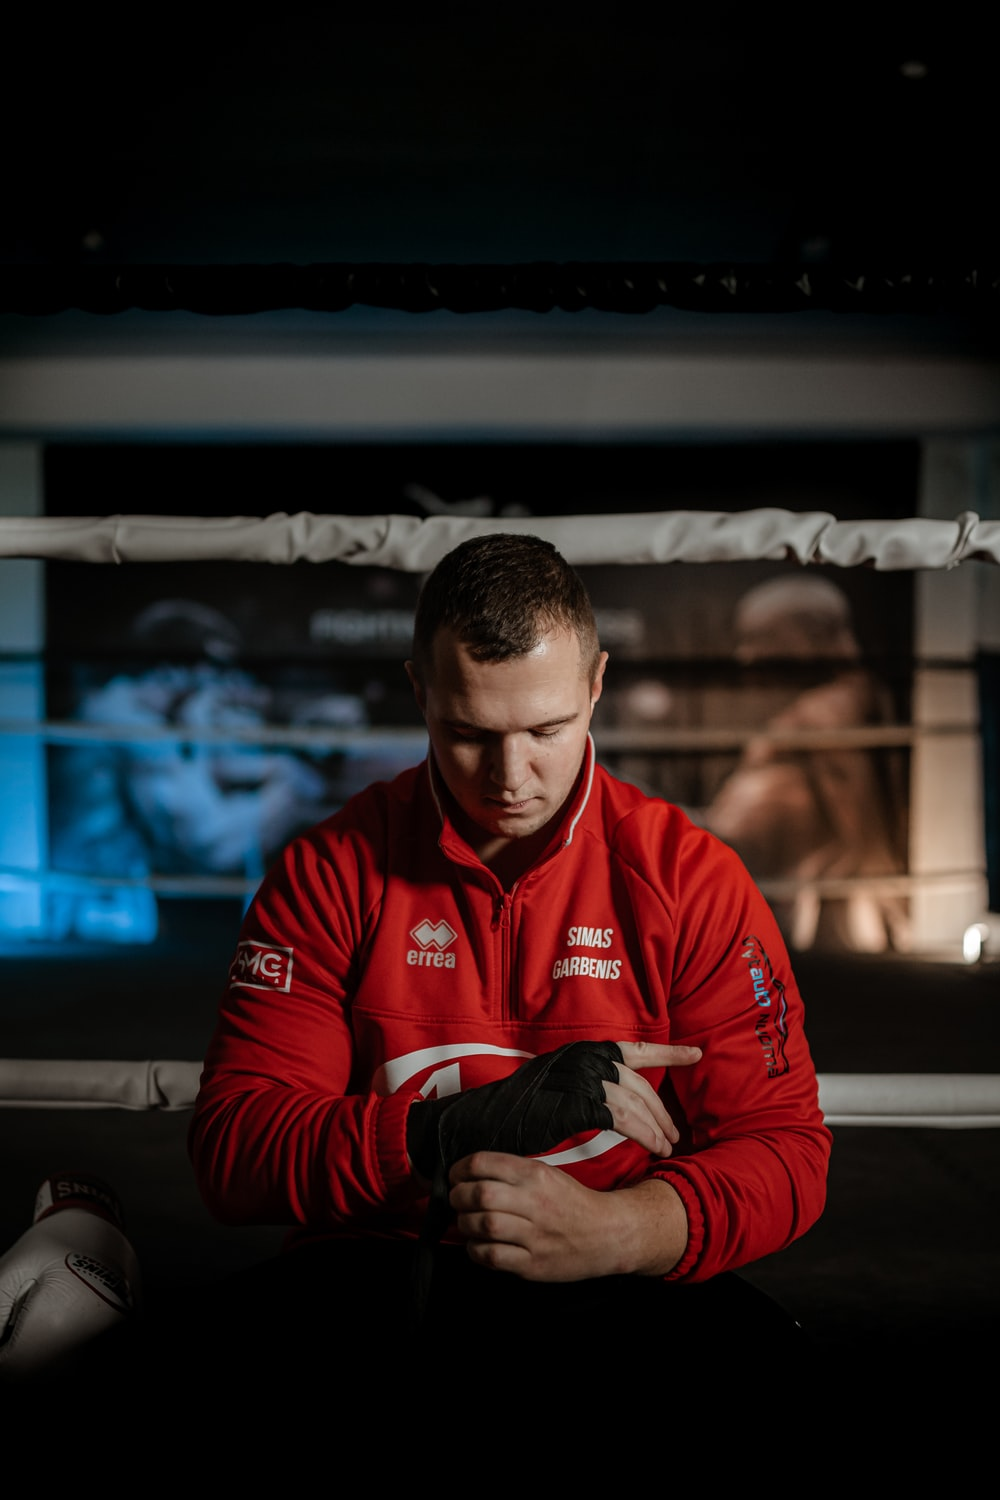 man in red and black adidas jacket